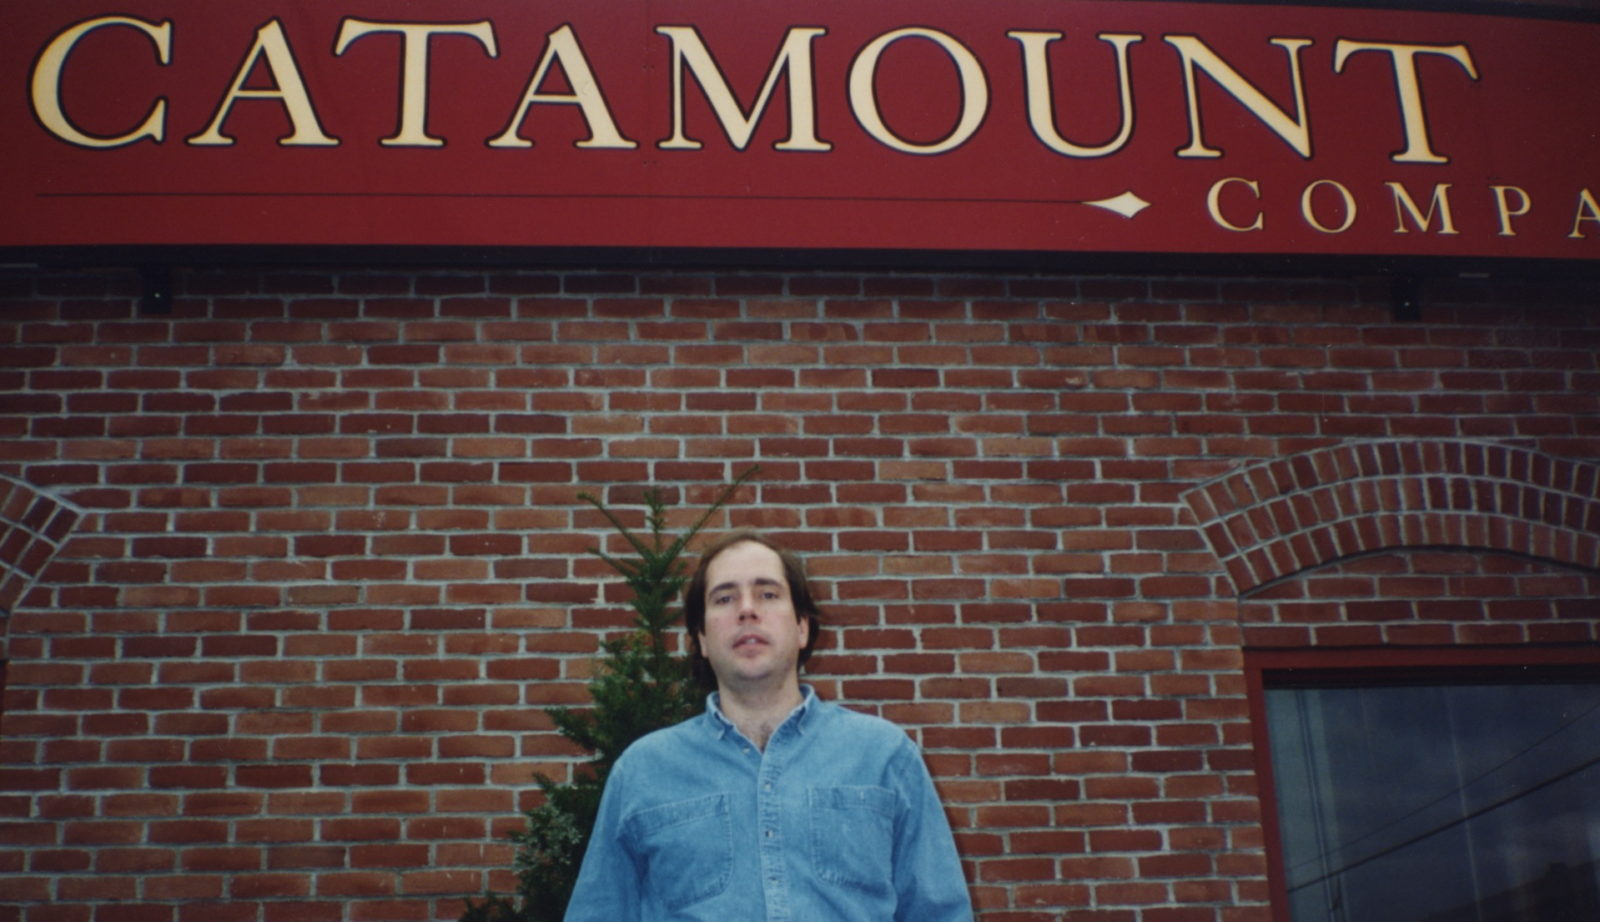 8. Catamount Brewery, White River Junction, VT 1994